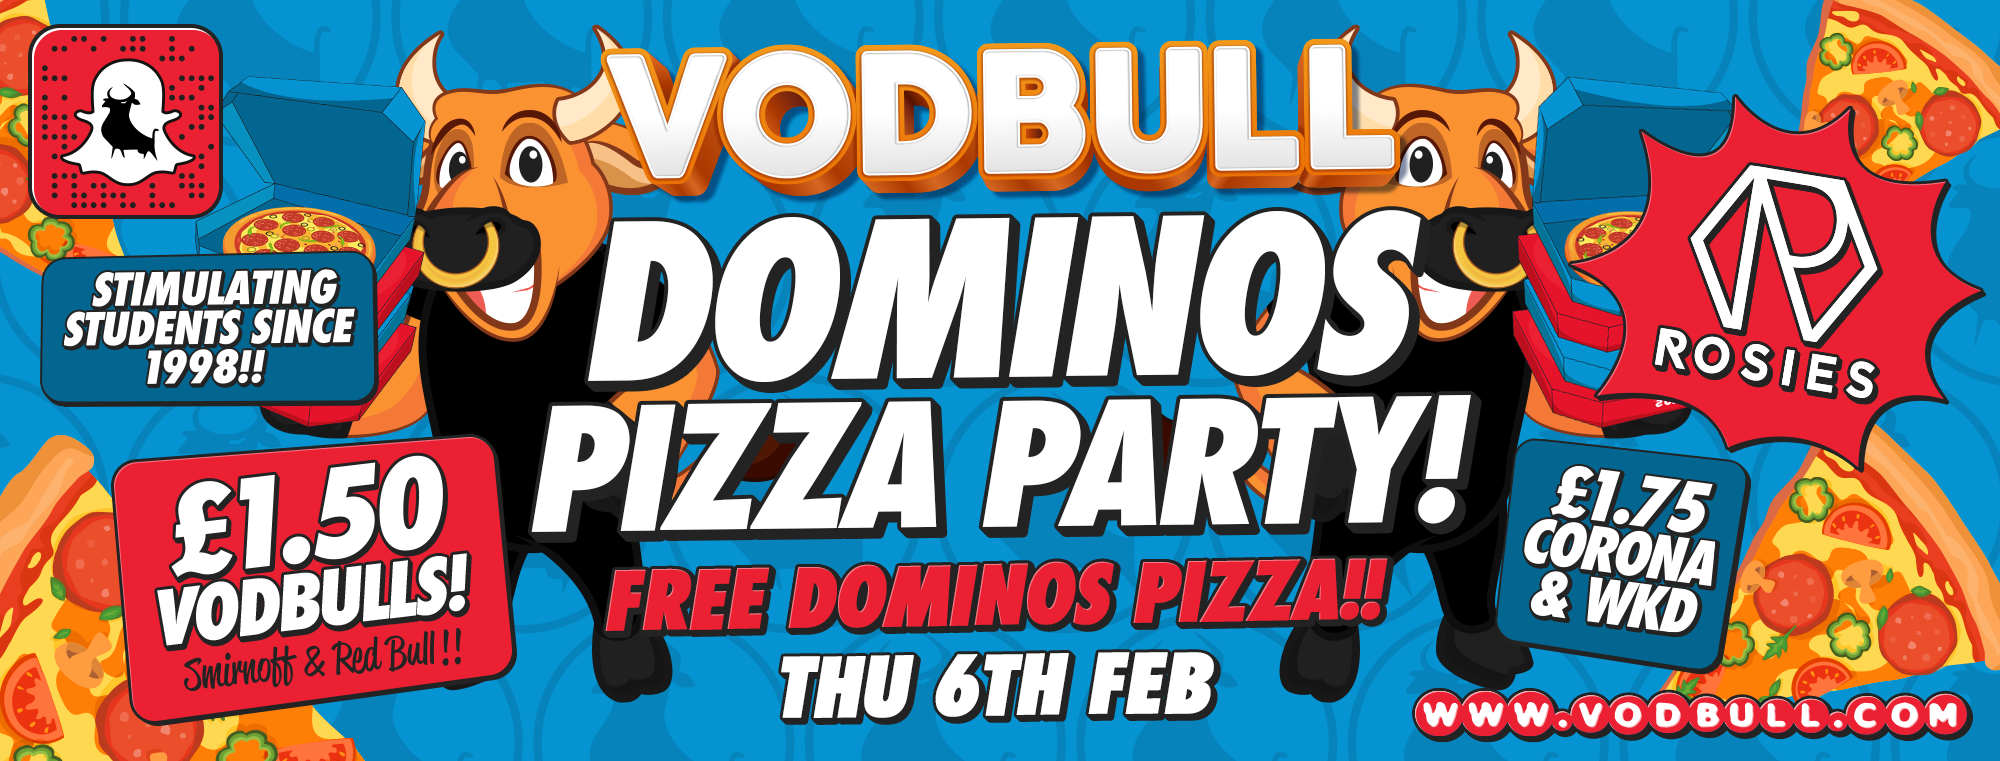 Vodbull 🍕 DOMINOS PARTY!! 🍕